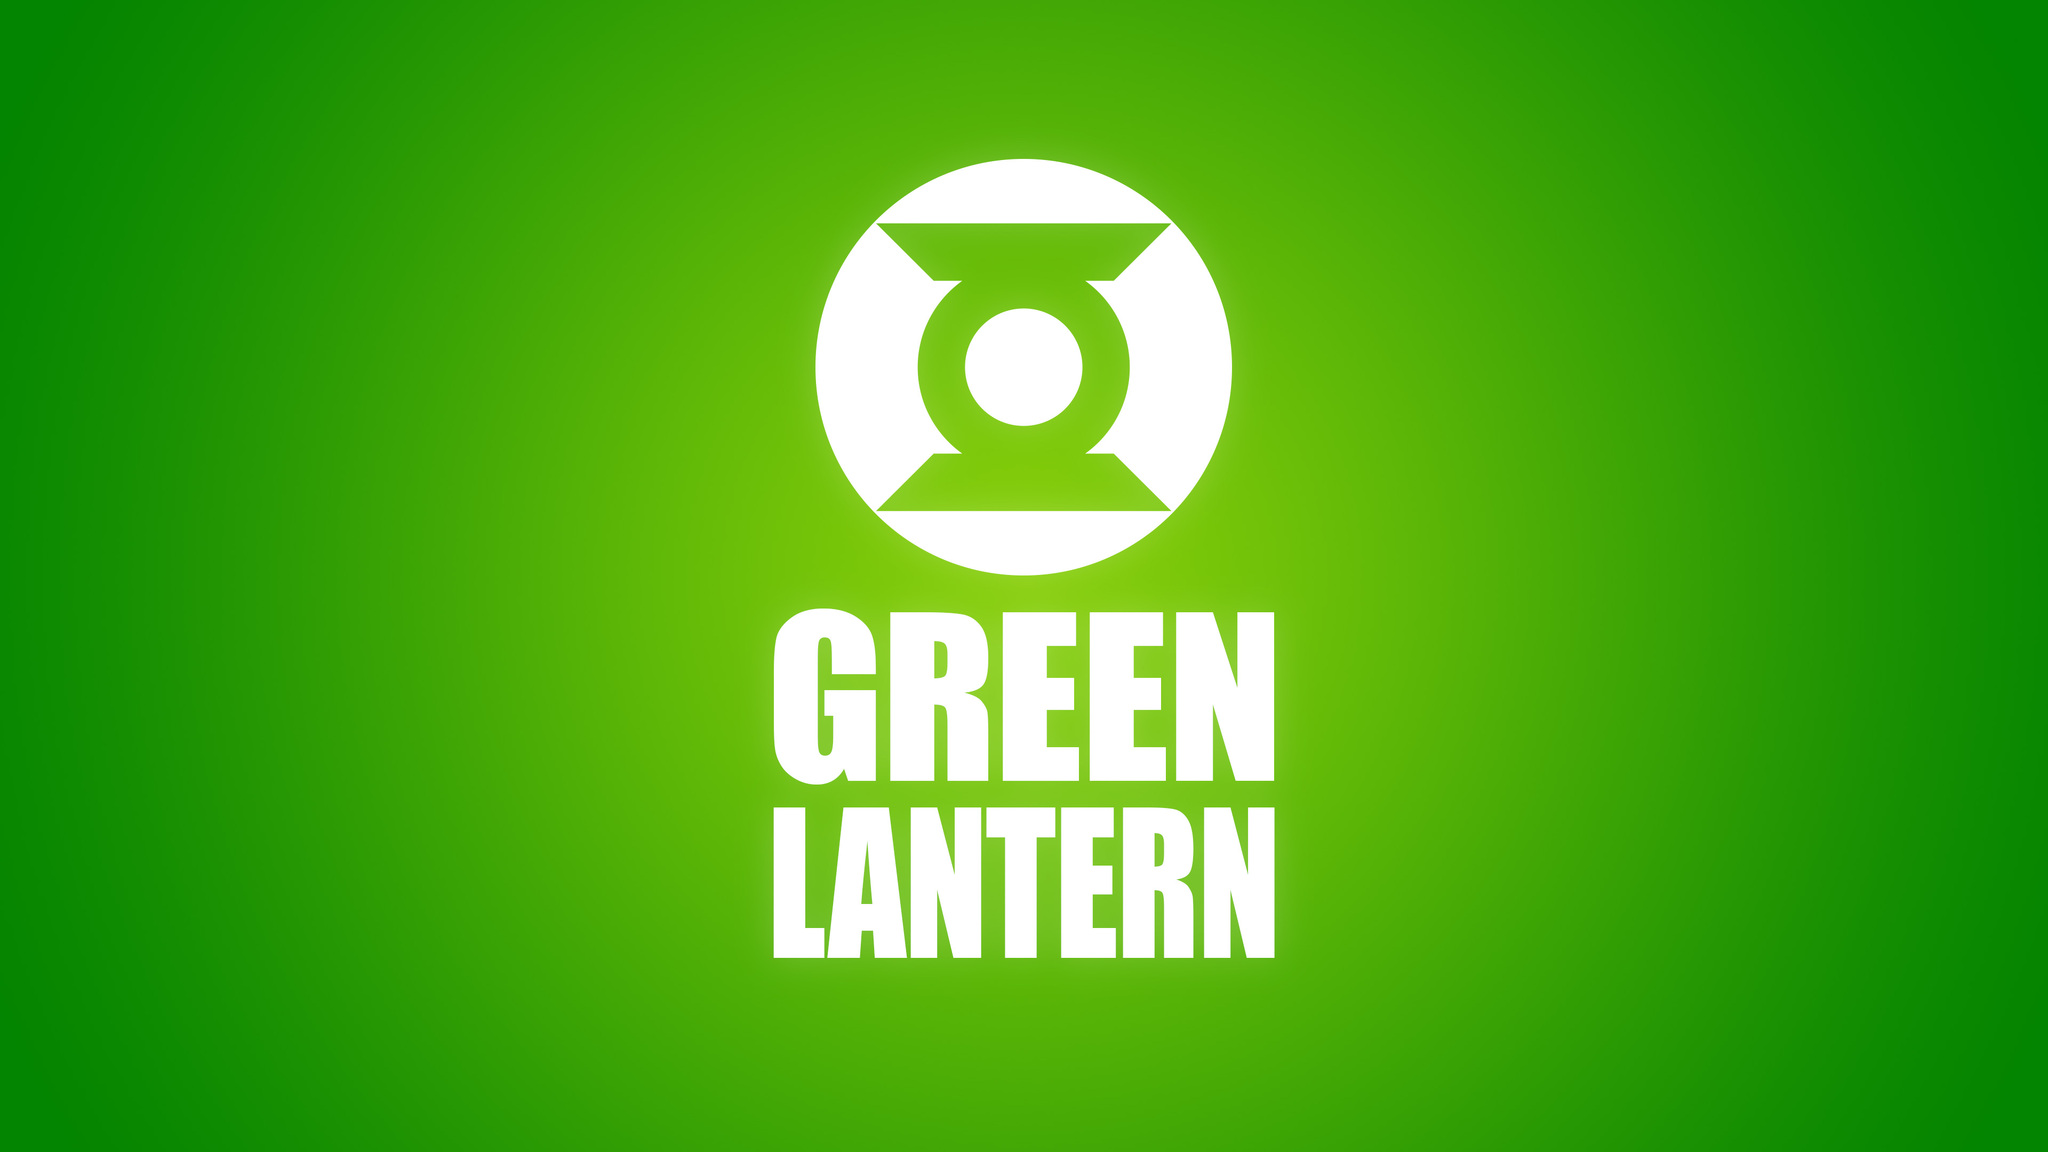 2048x1152 green lantern logo 4k 2048x1152 resolution hd 4k